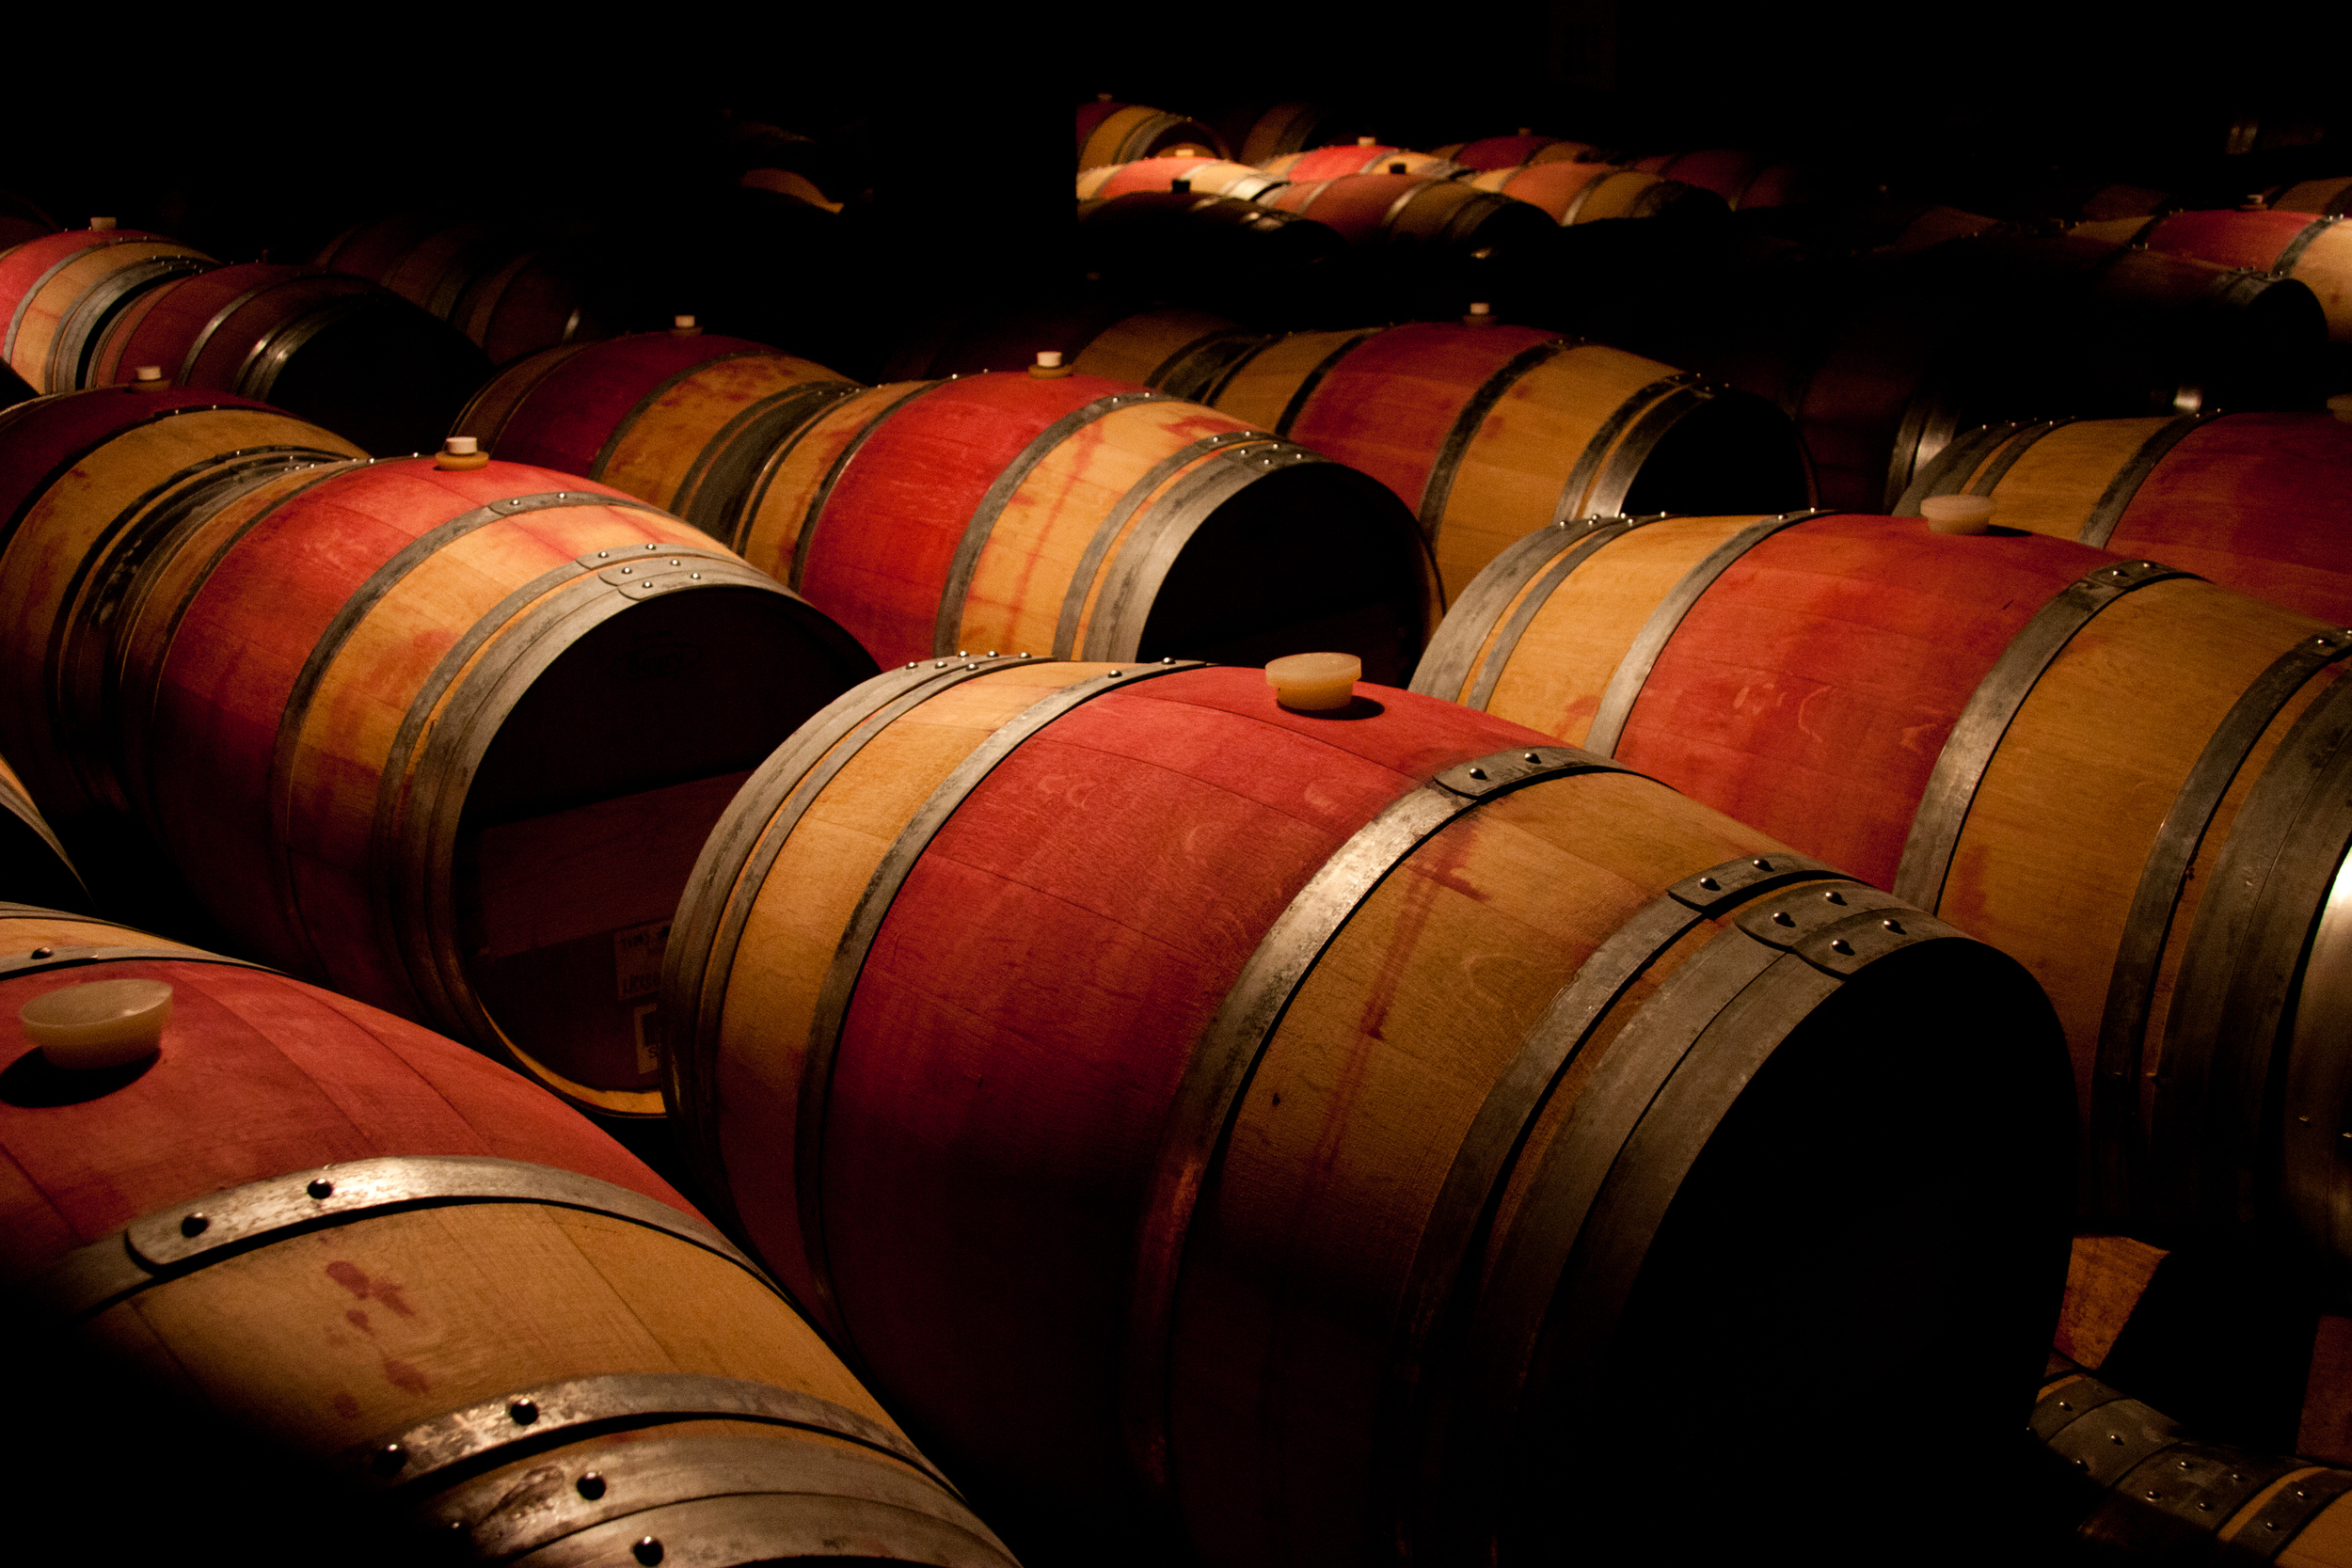 All of our pieces come from fine aged oak wine barrels from the Central Coast